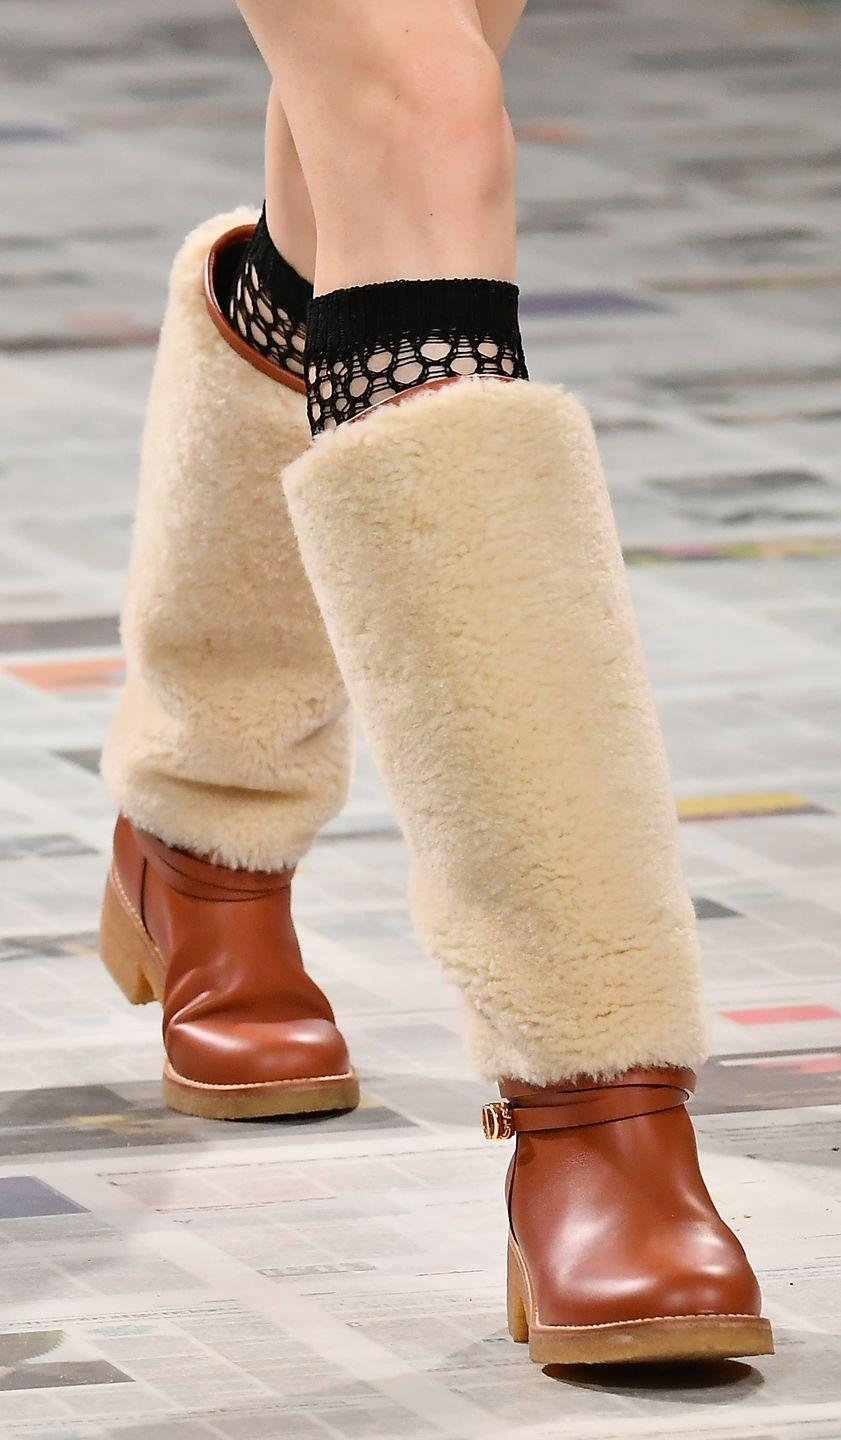 <p>Brands like Dior (<em>left</em>), Prada, and Ferragamo showcased shearling styles this season, and with good reason—they're both warm <em>and </em>chic.</p>